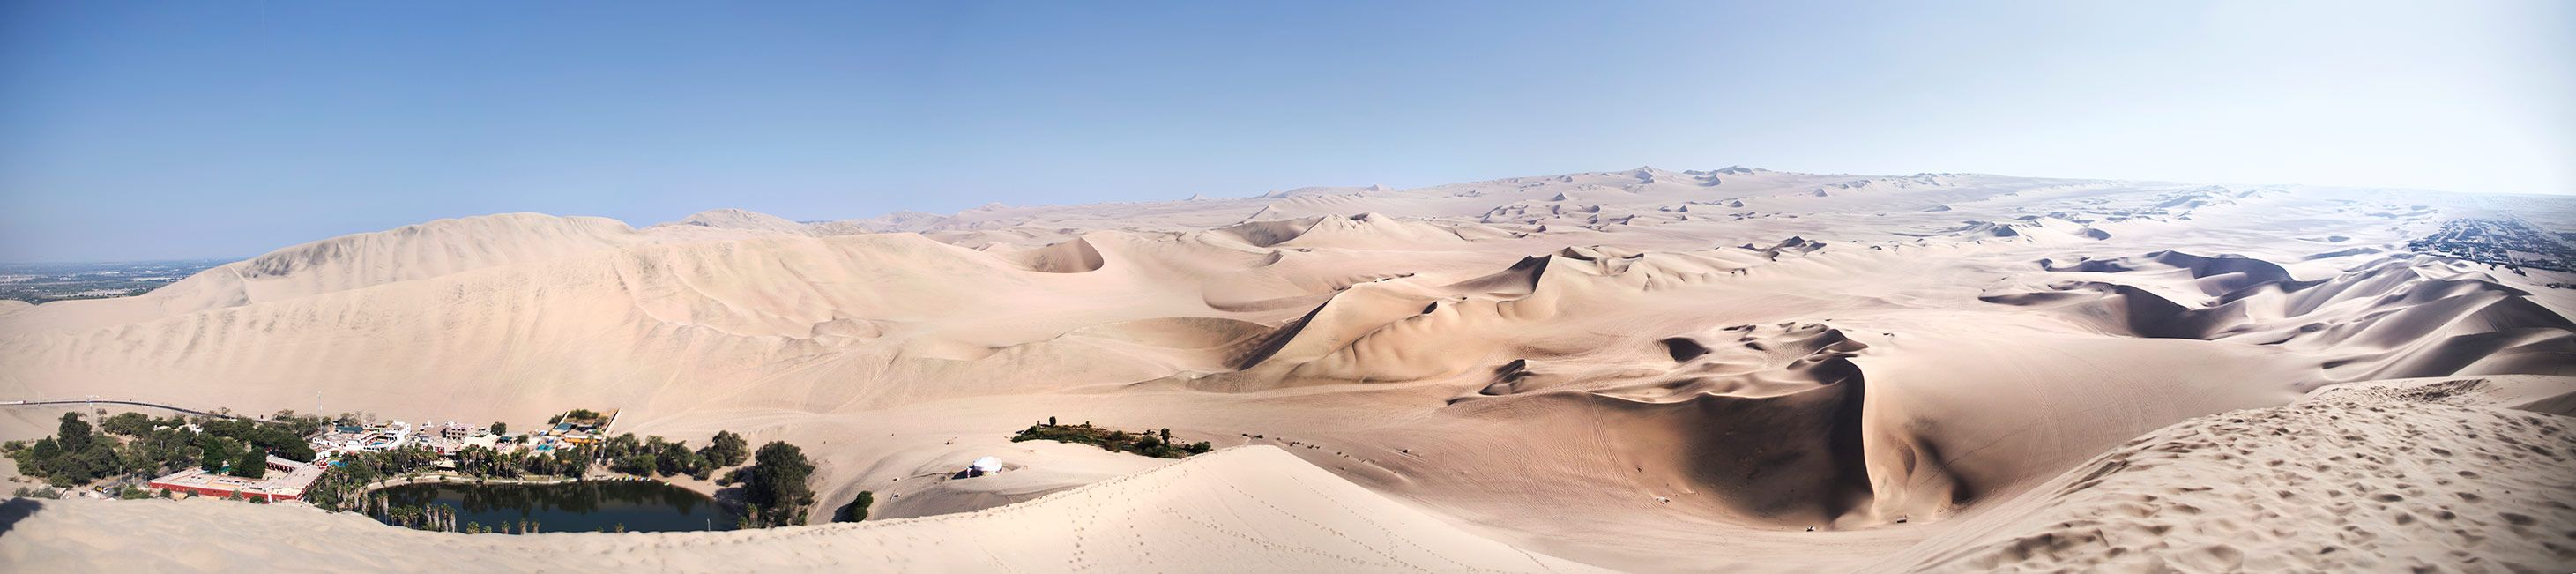 panoramica-huacachina